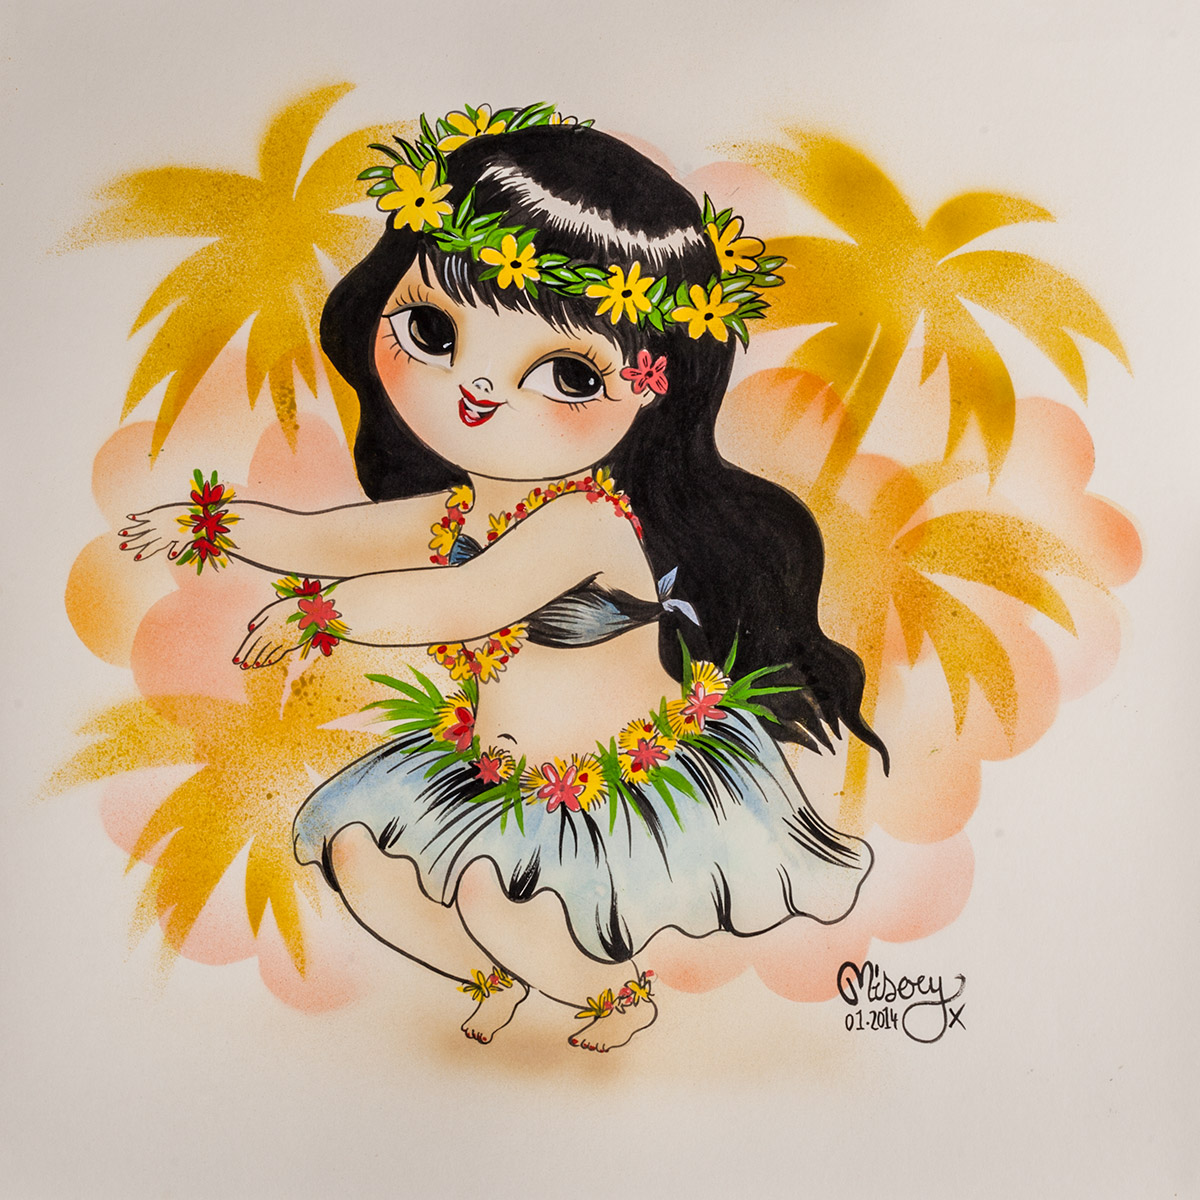 Misery-BlueHawaii.jpg